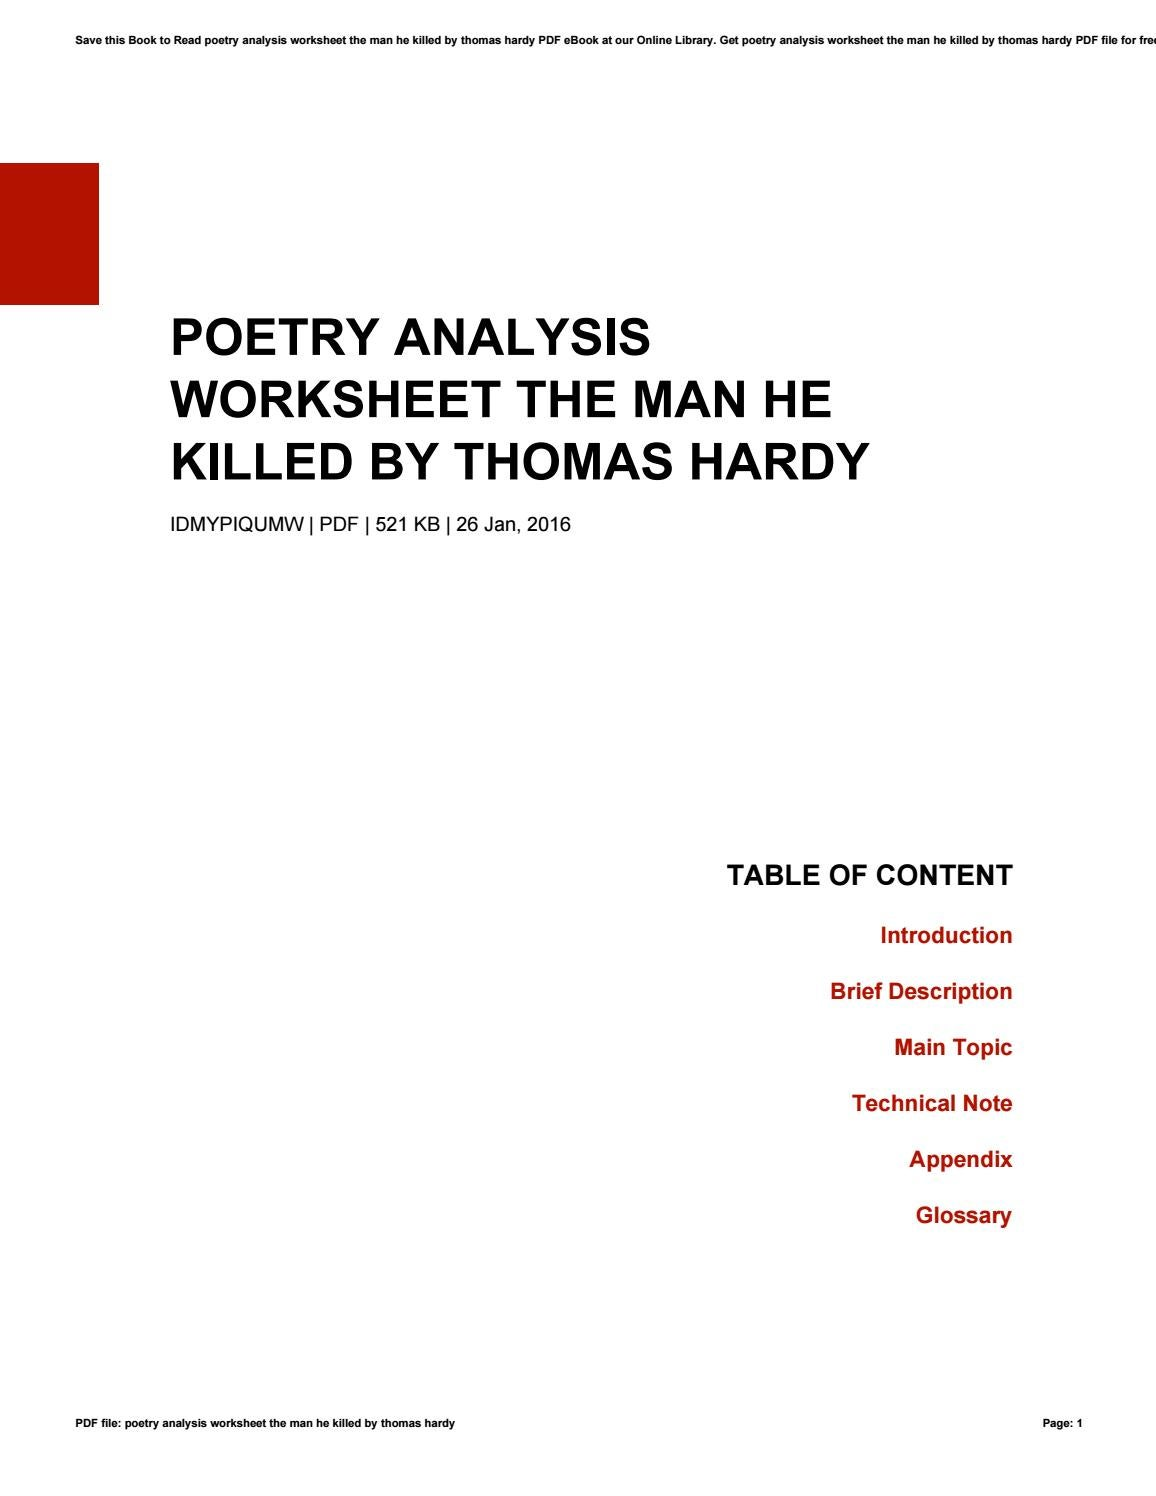 analysis of thomas hardy Analysis of poems by thomas hardy including under the waterfall, the convergence of the twain, neutral tones, the darkling thrush,, at an inn, the going, the voice, at castle boterel, afterwards, the hunter.